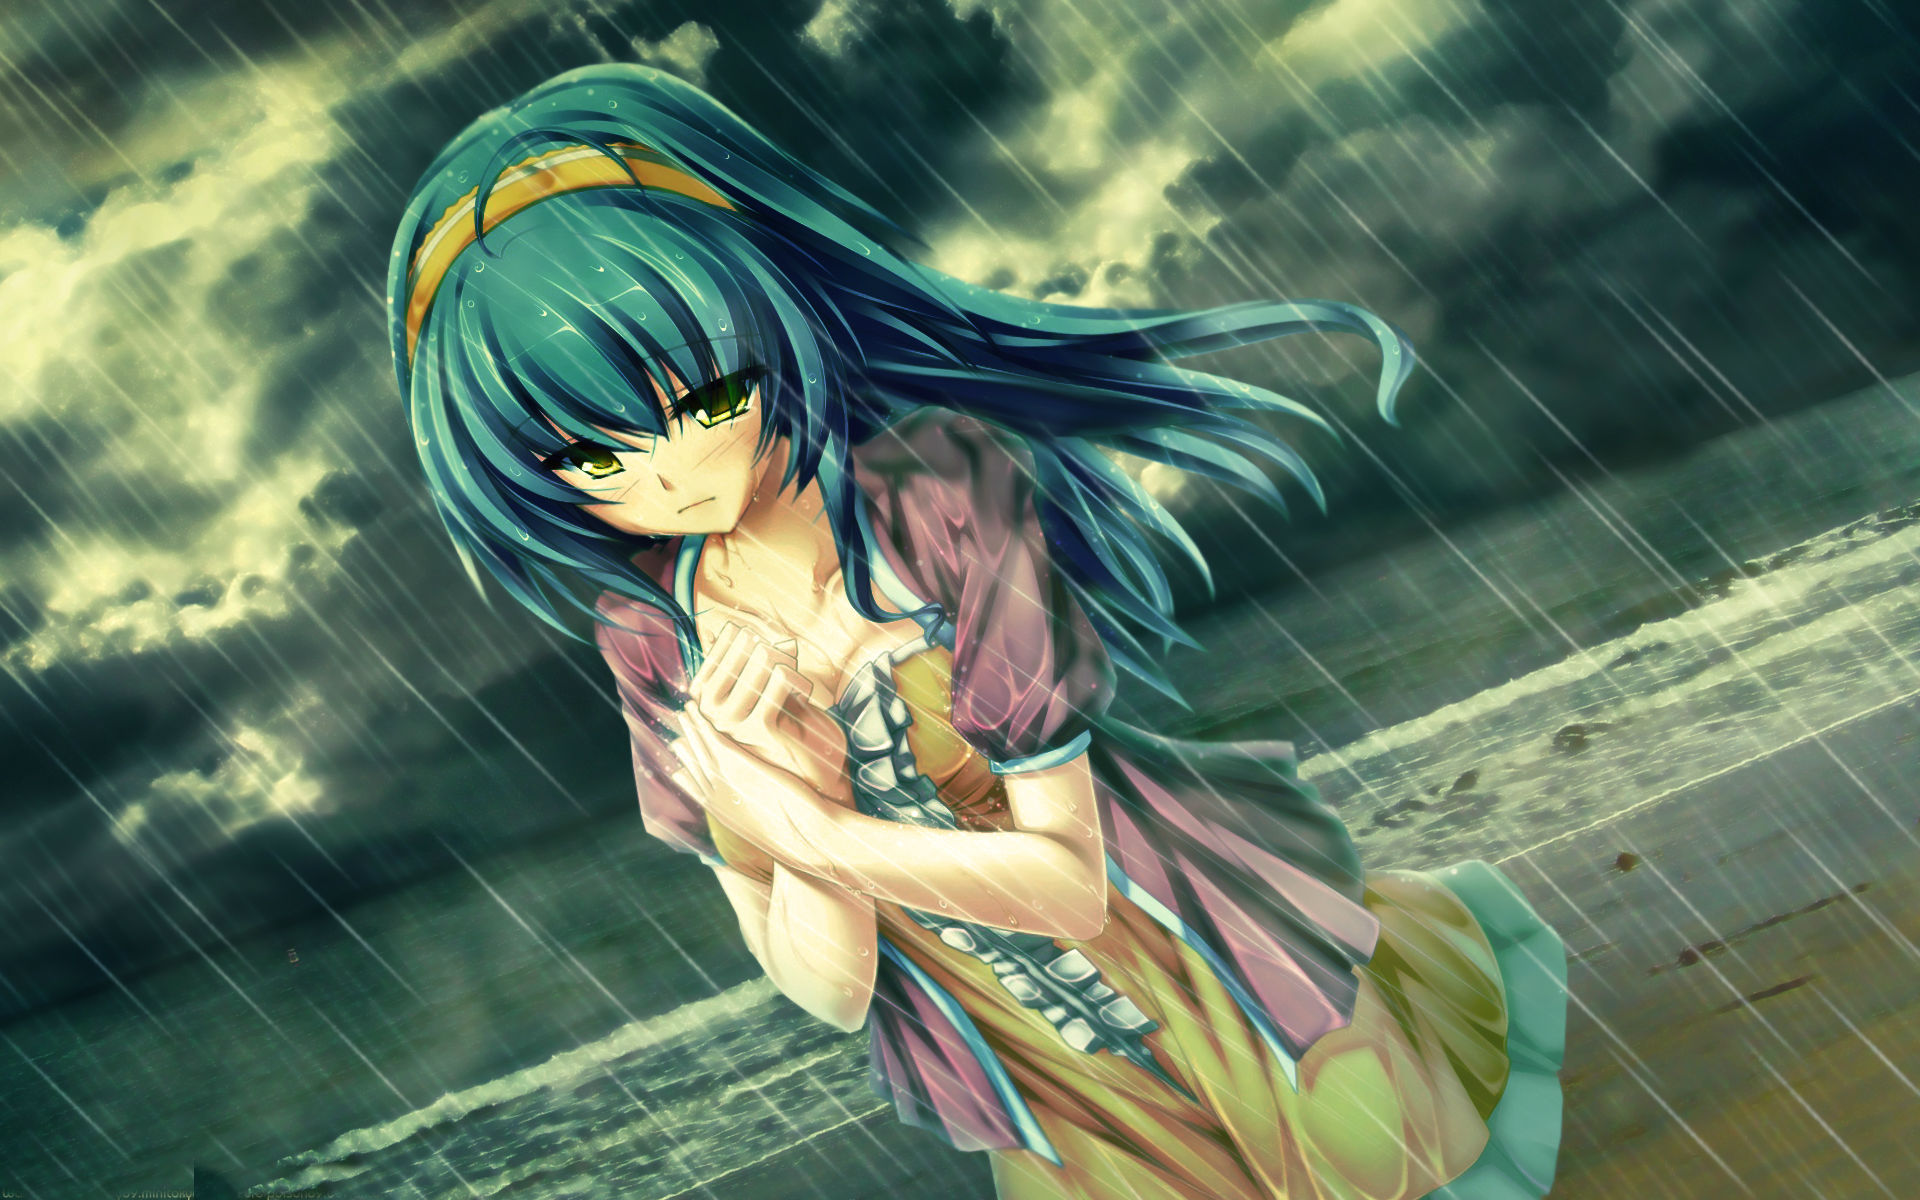 Beautiful hd anime wallpaper wallpapersafari - Anime girl full hd ...